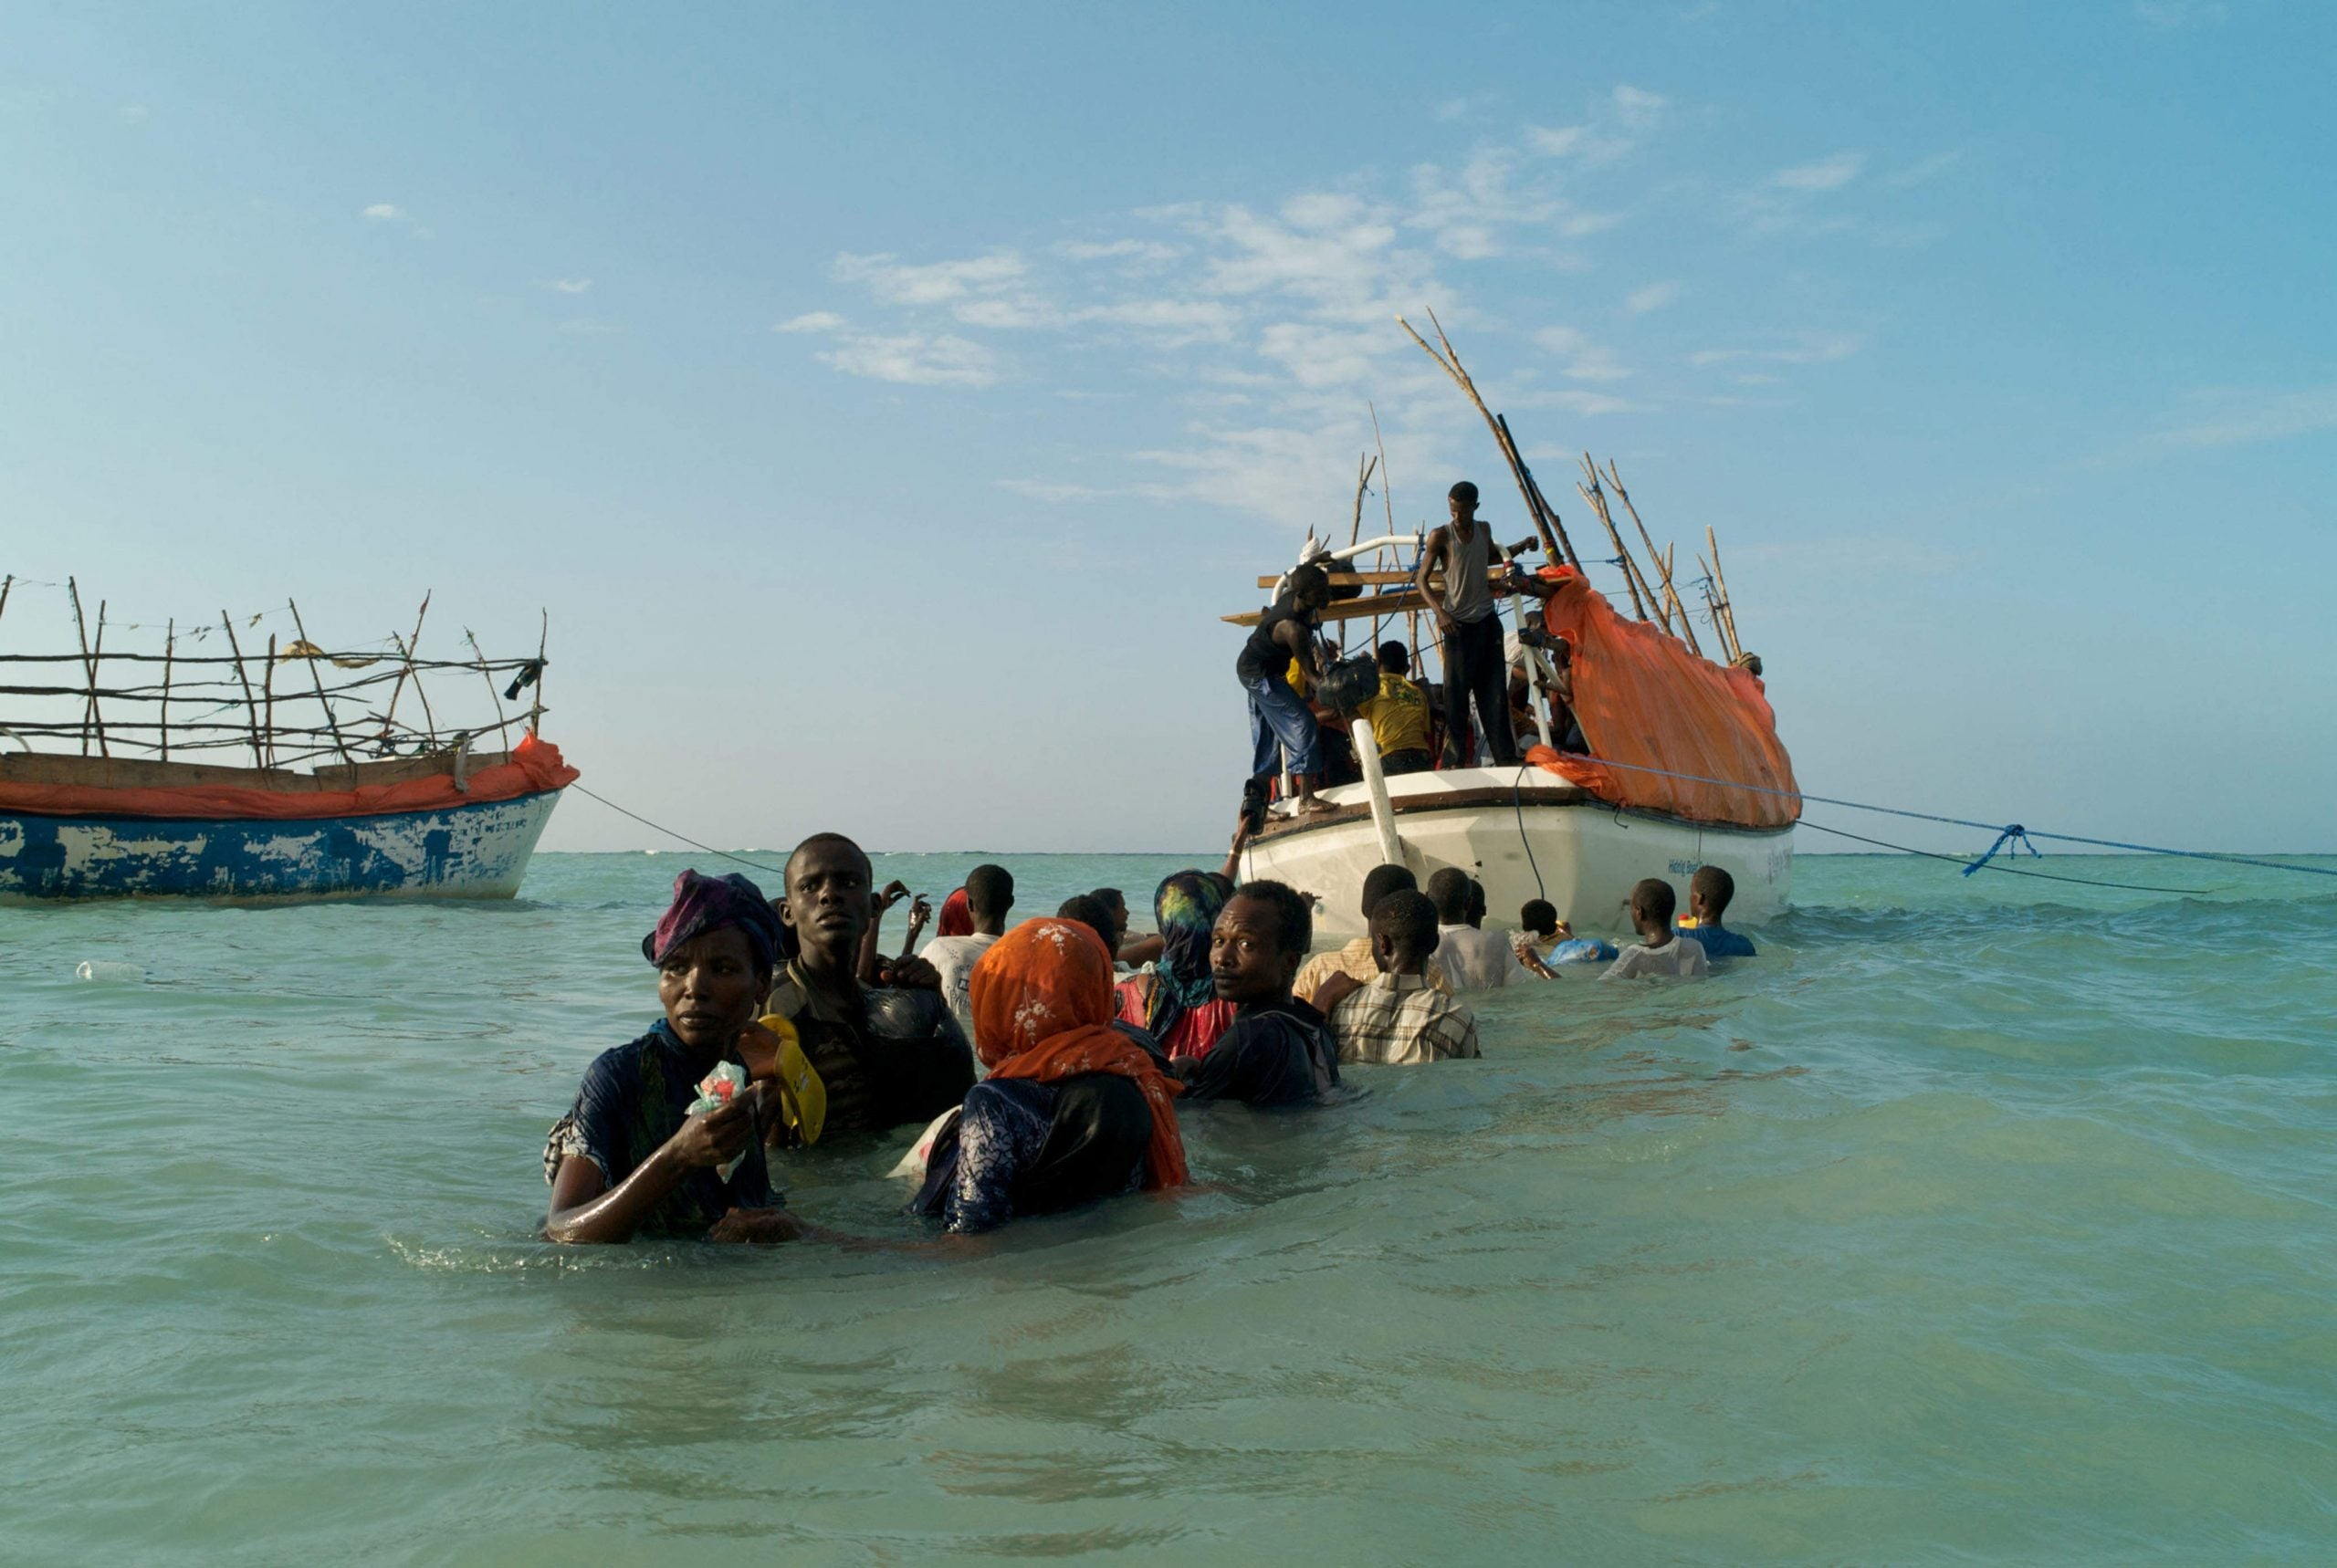 From Africa to Kent: following in the footsteps of migrants